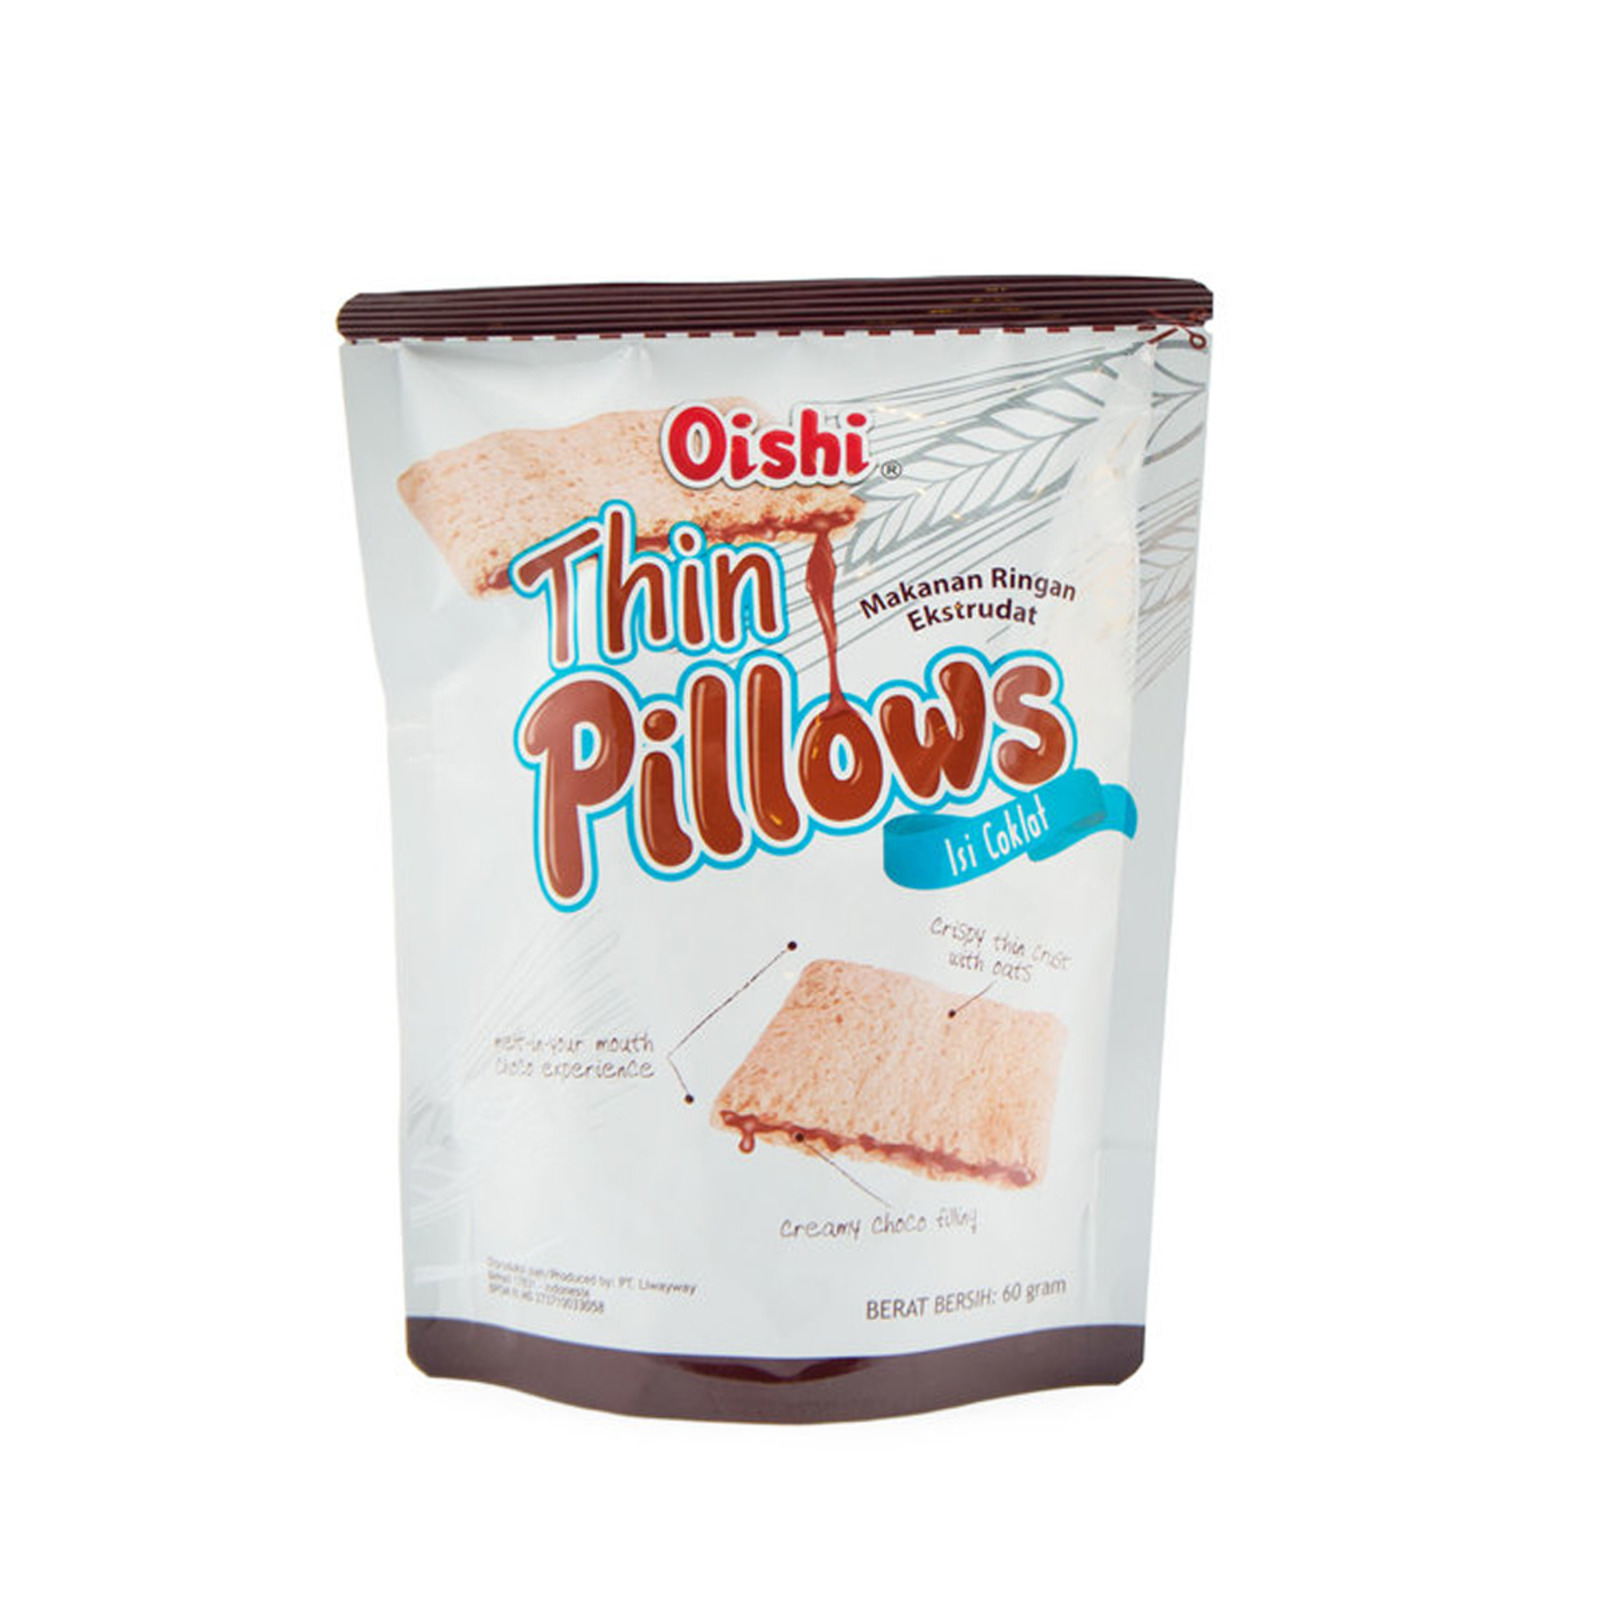 Oishi Thin Pillows